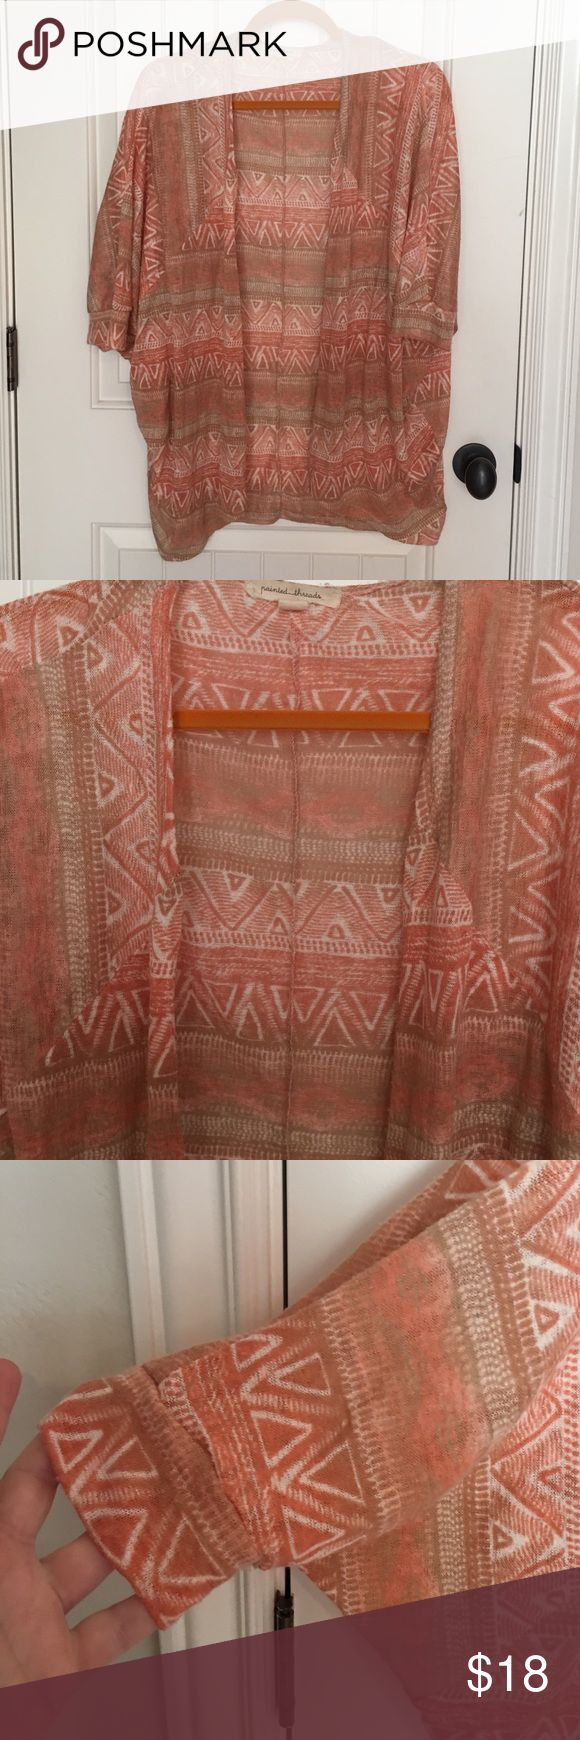 Woman's cardigan This is a beautiful cardigan.  It is perfect weight, flow and perfect color ( coral $& white) for Spring & Summer!  It looks so cute with cropped white jeans & cute sandals or wedges!  Very versatile dress up or down.  Very fun Aztec design on it.  Dress it up for an evening date or night out but light enough to wear all day, even in Summer.  Bought at Boutique.  Size M.  Could probably fit a bit bigger too!  Really fun & pretty 😊❤$18 MINT! Tops